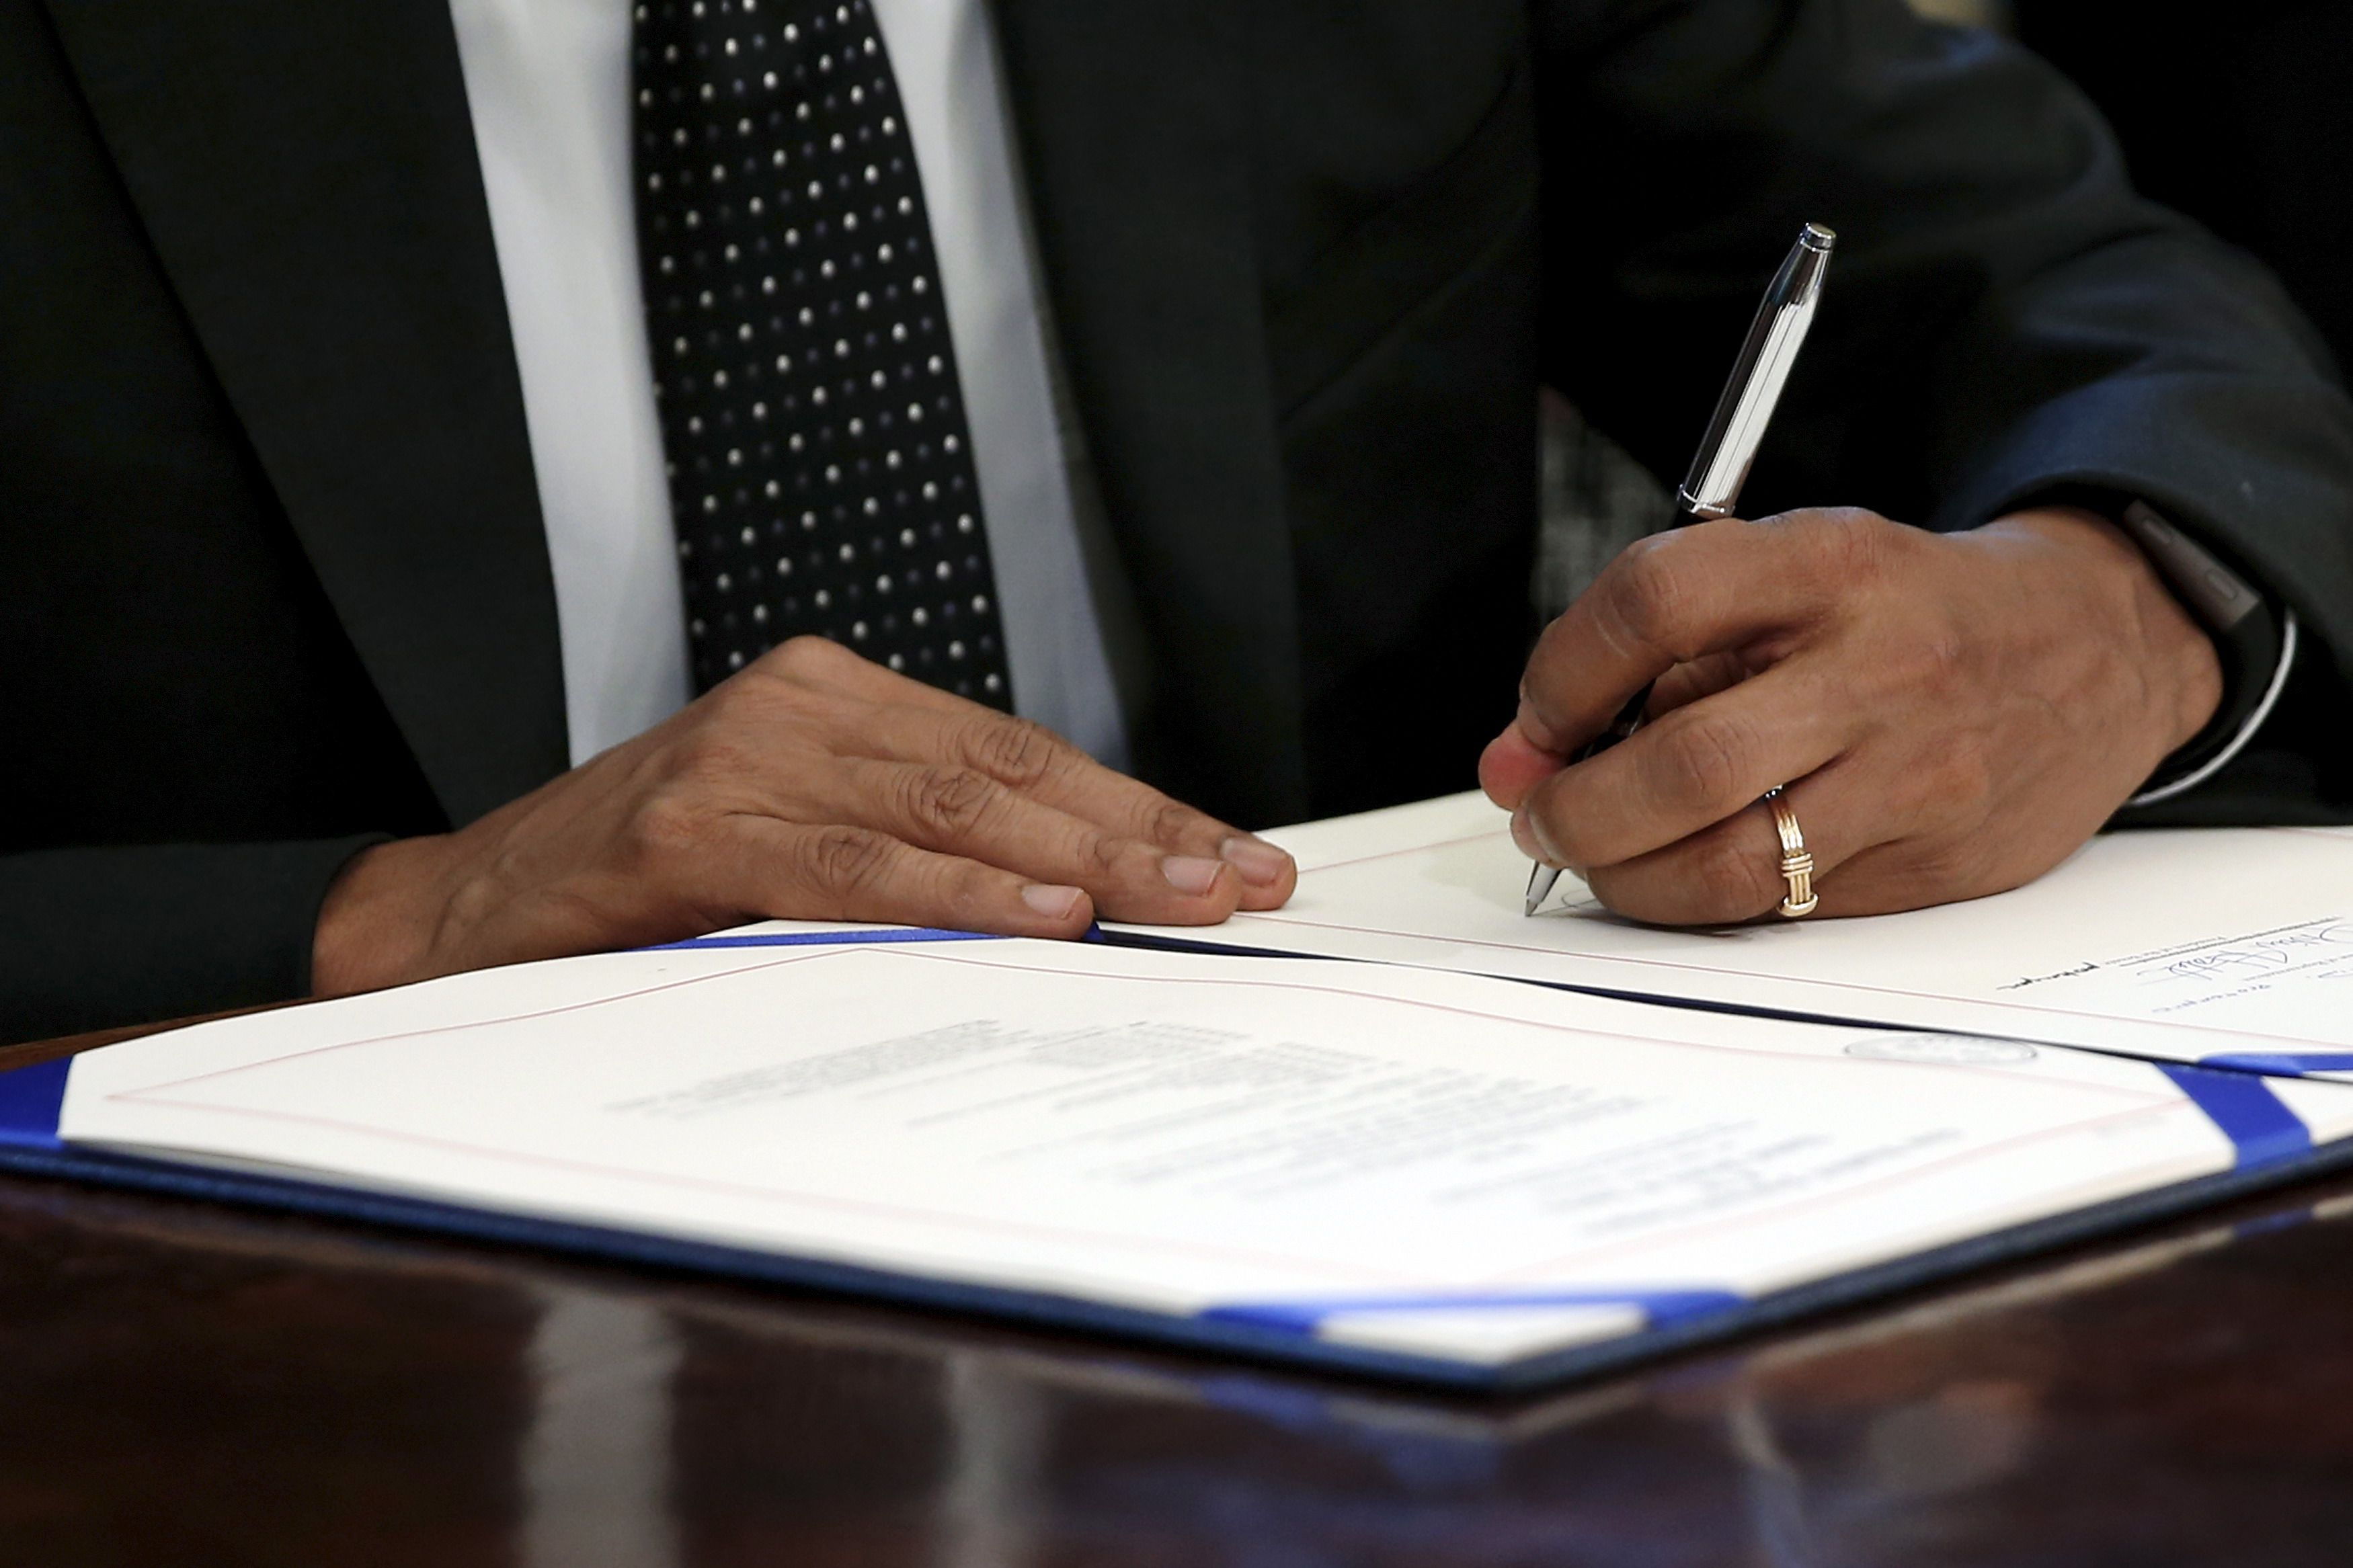 U.S. President Barack Obama signs the Sawtooth National Recreation Area and Jerry Peak Wilderness Additions Act into law at his desk in Oval Office at the White House in Washington August 7, 2015. The law sets aside 275,665 acres (1,116 square km) of Idaho's Boulder-White Clouds Wilderness to be permanently protected from development.  REUTERS/Jonathan Ernst - RTX1NHZW